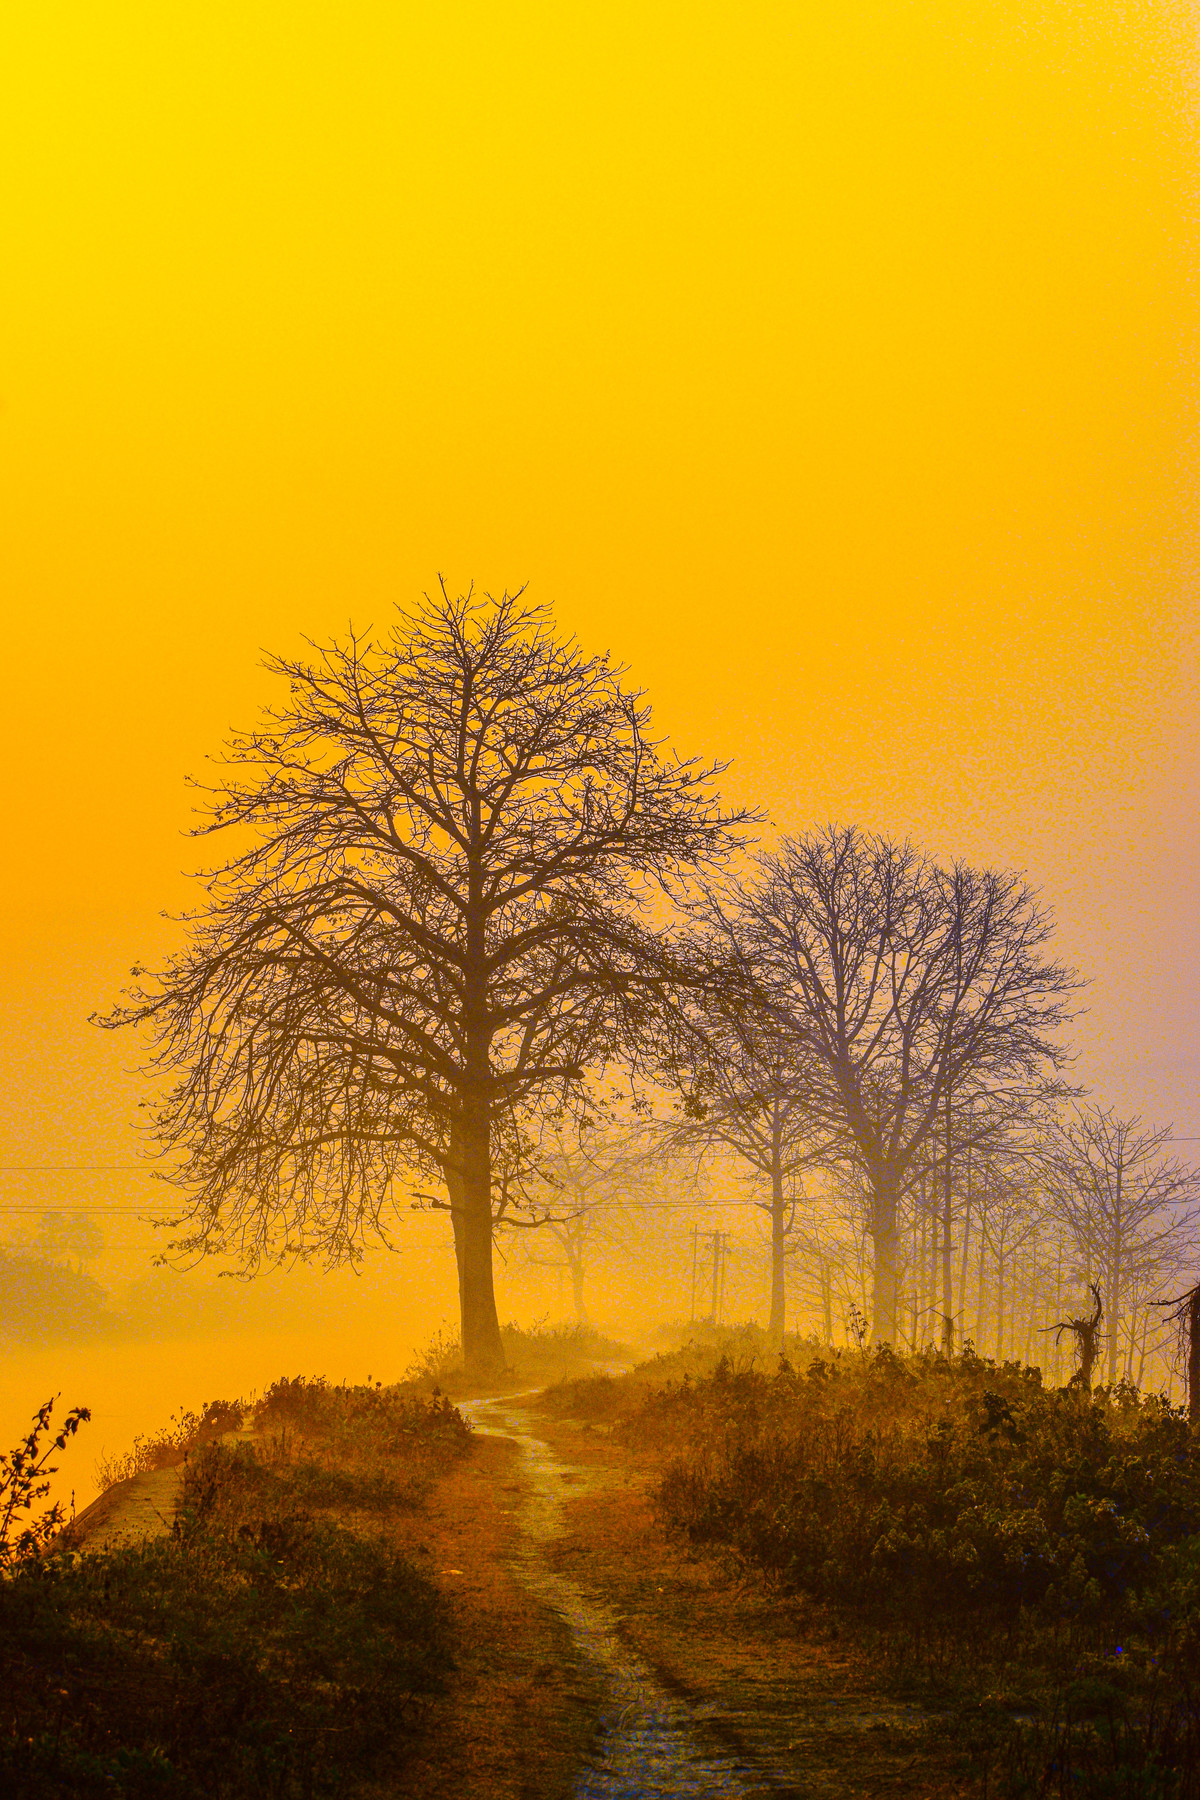 Sunrise view by Arif Amin, Digital Photography, Digital Print on Paper, Yellow color